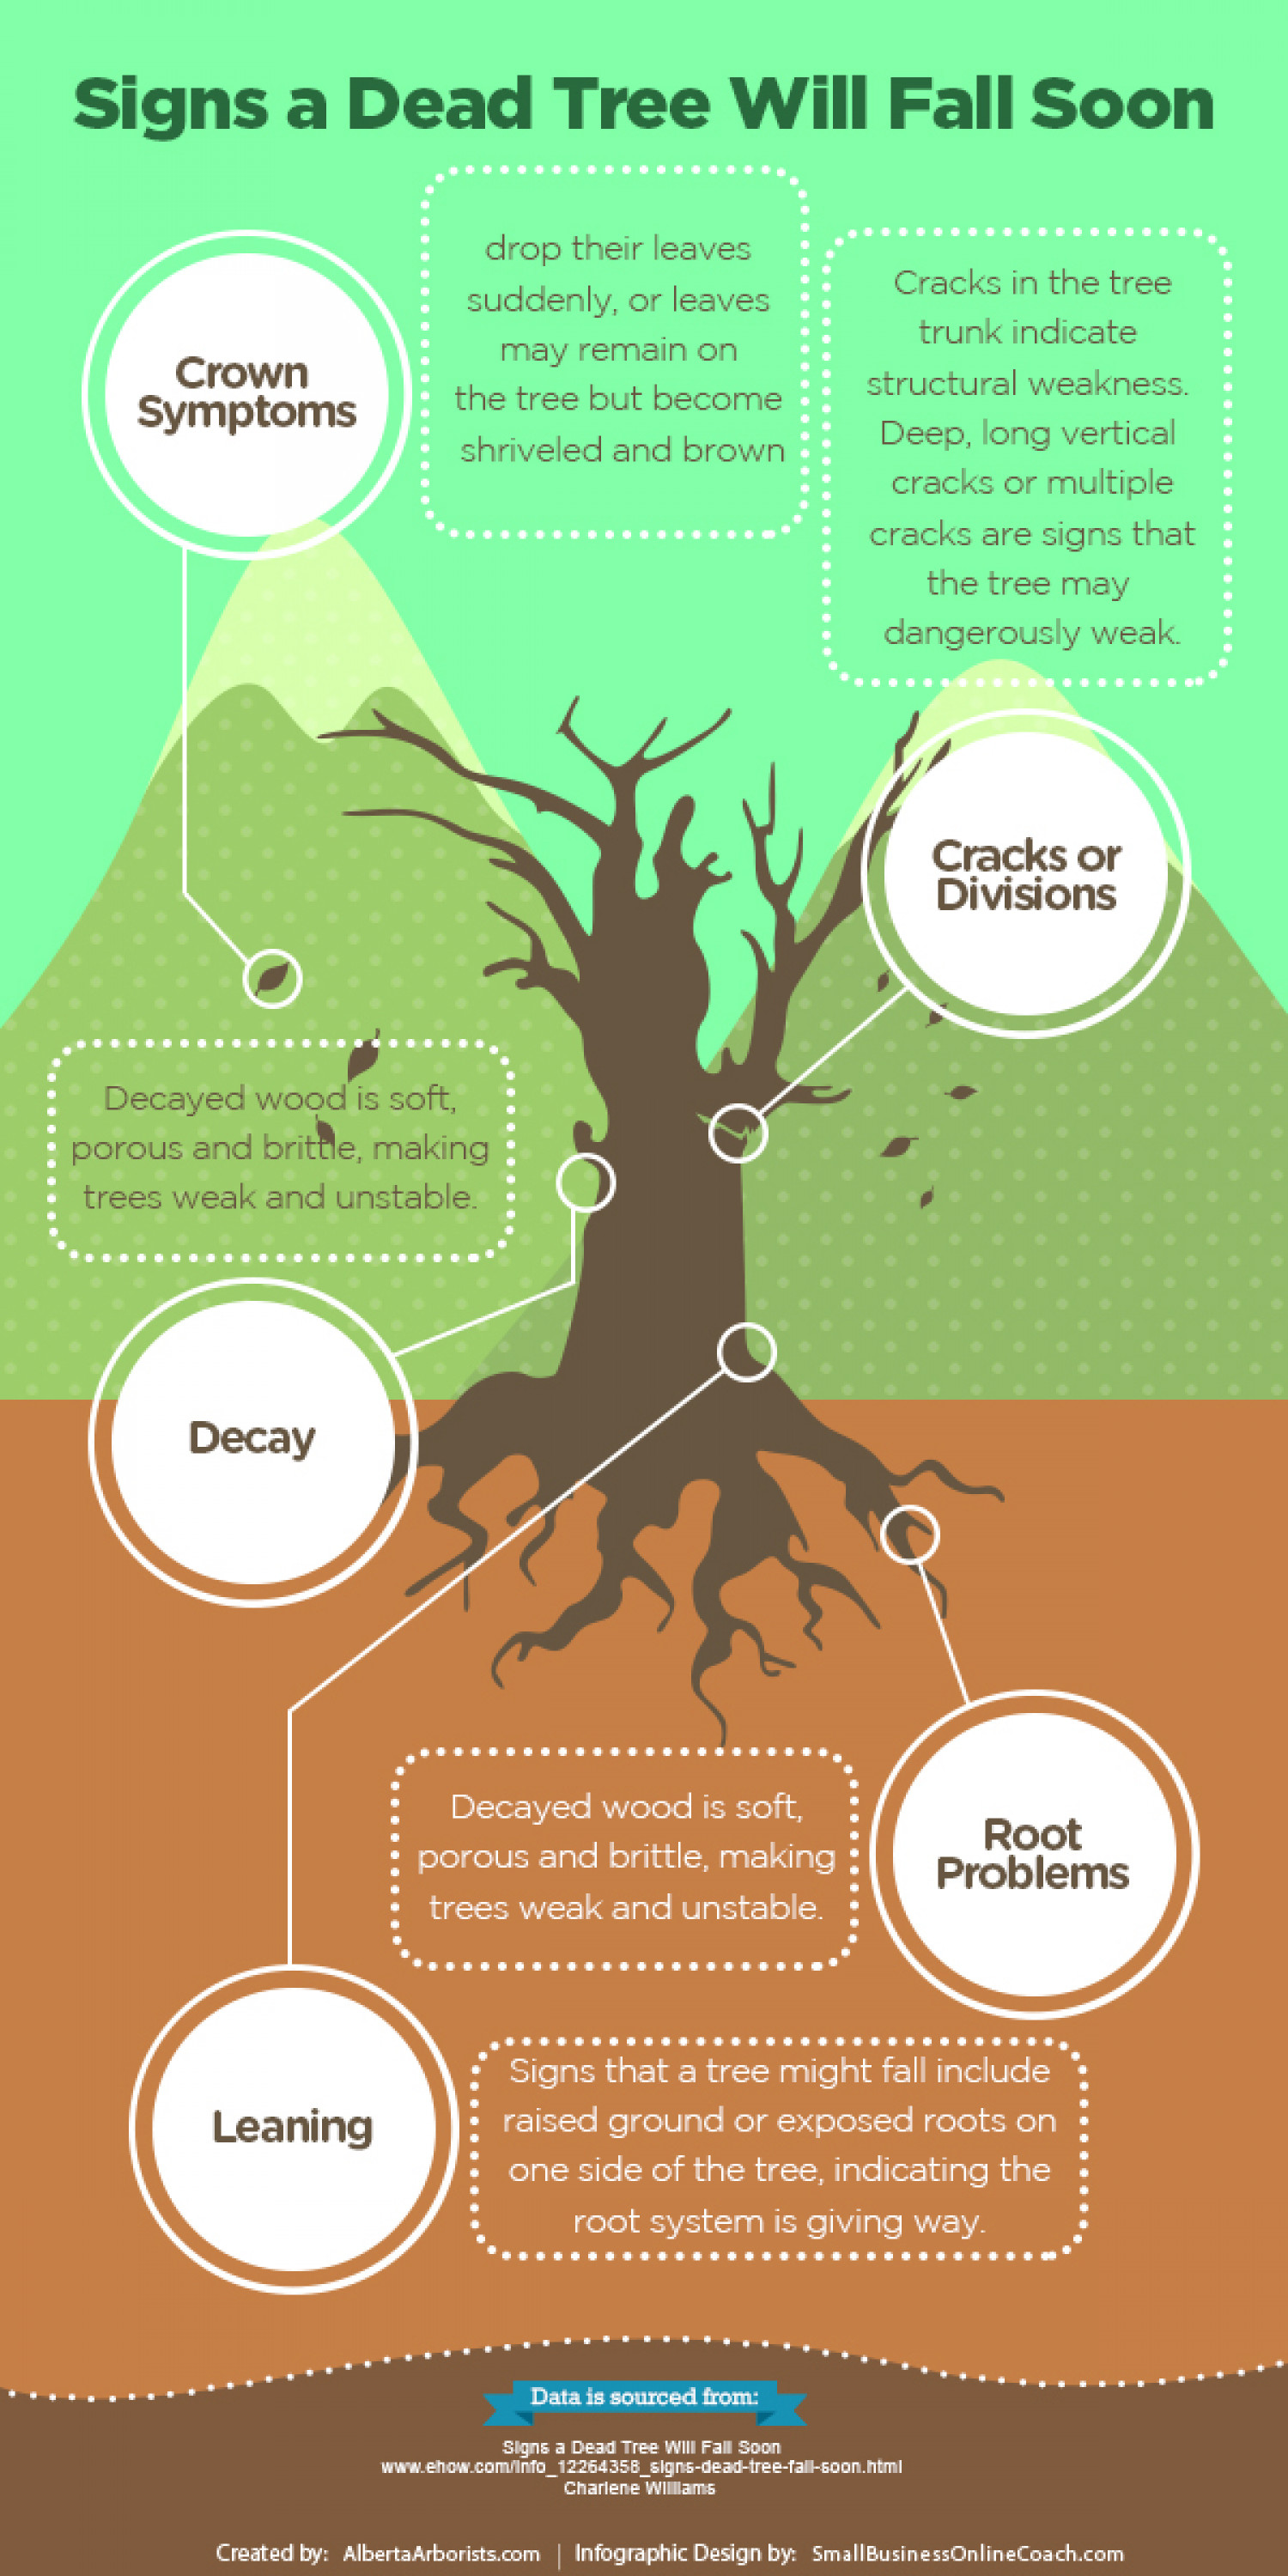 Signs a Dead Tree Will Fall Soon Infographic